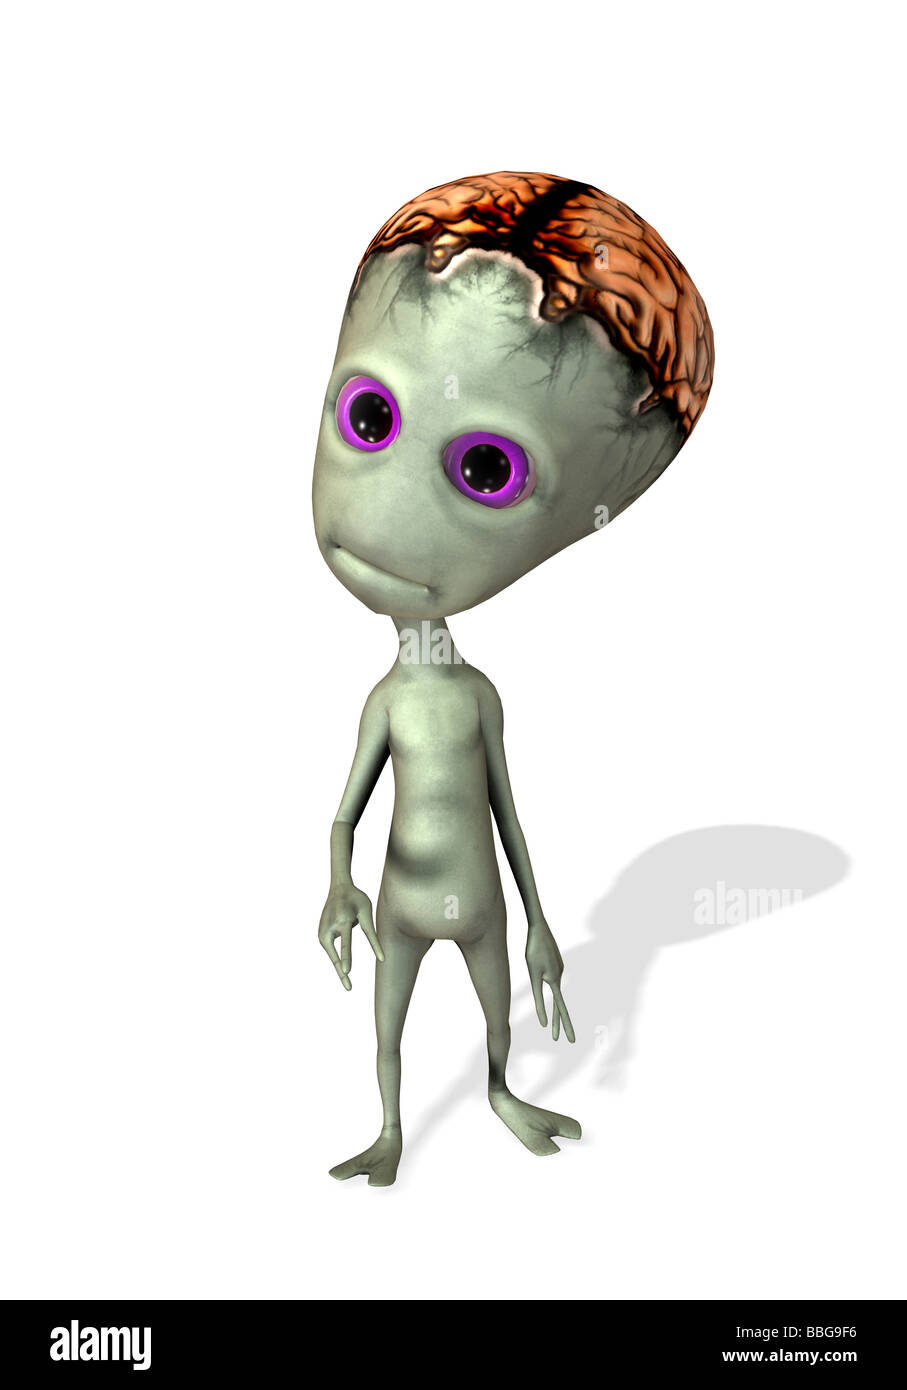 alien toon - Stock Image